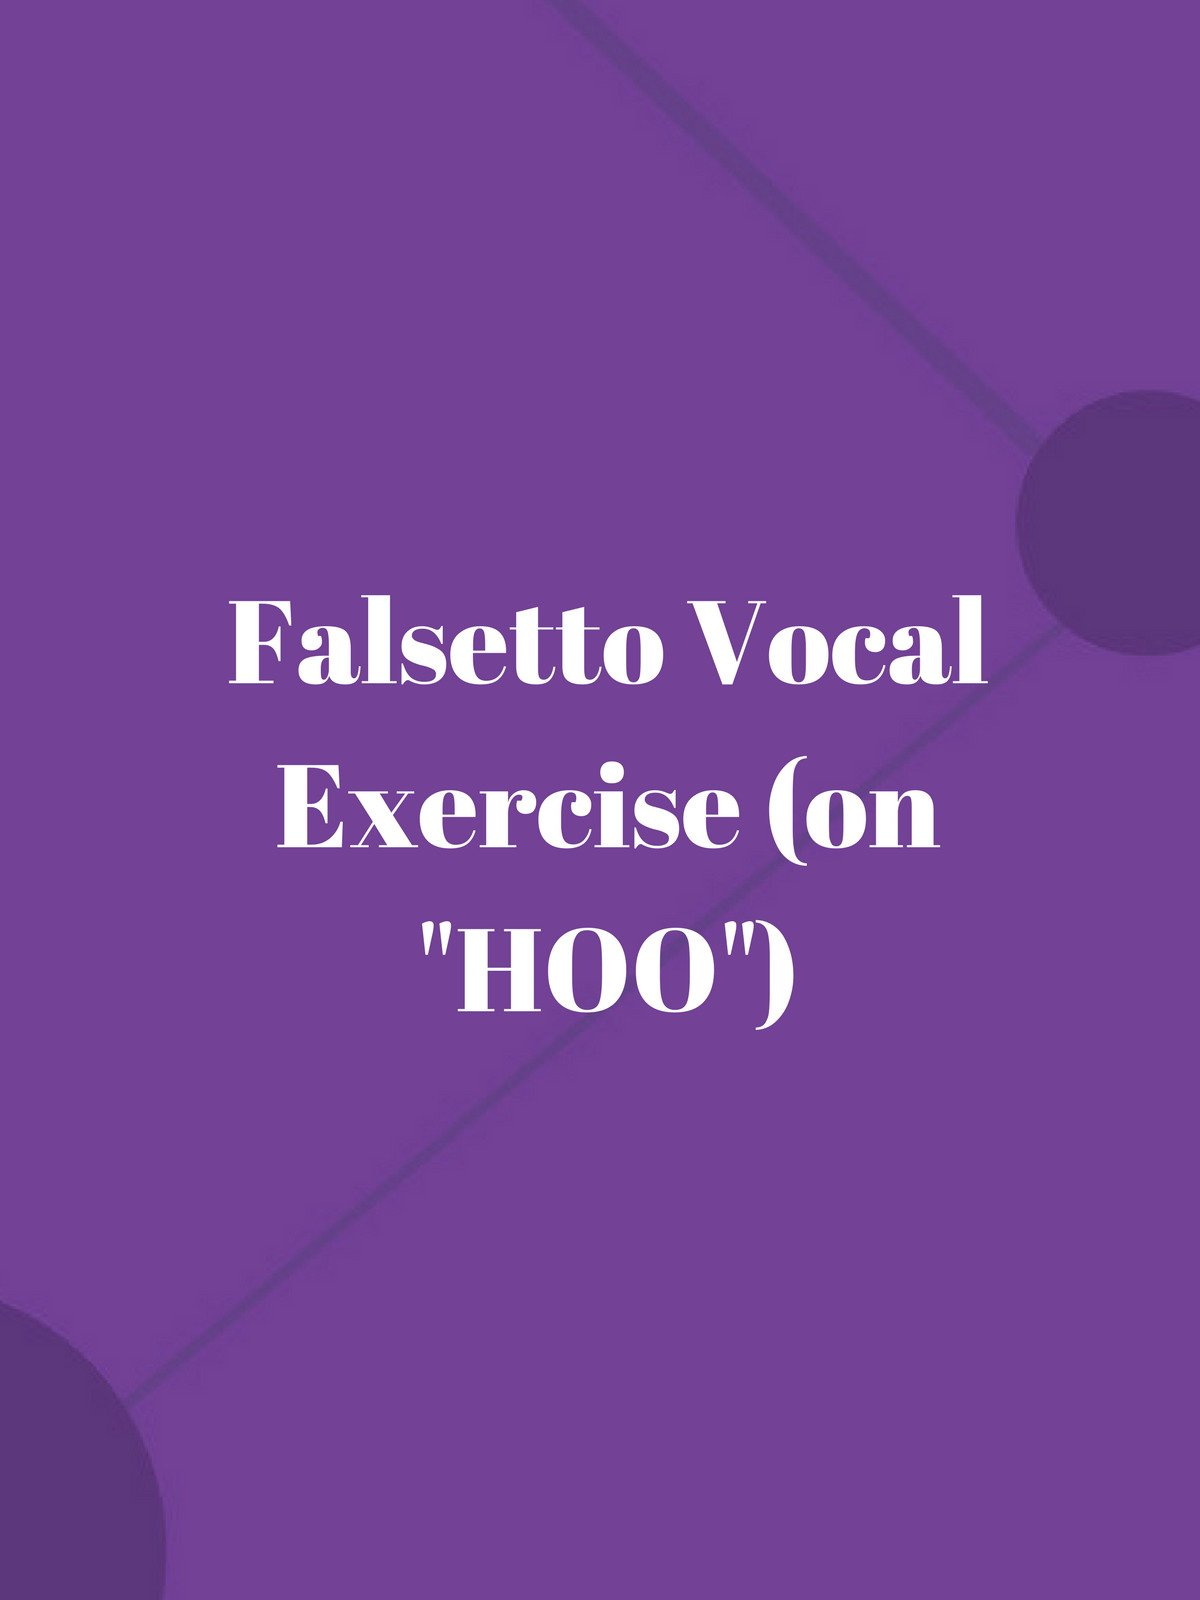 "Falsetto Vocal Exercise (on ""HOO"")"